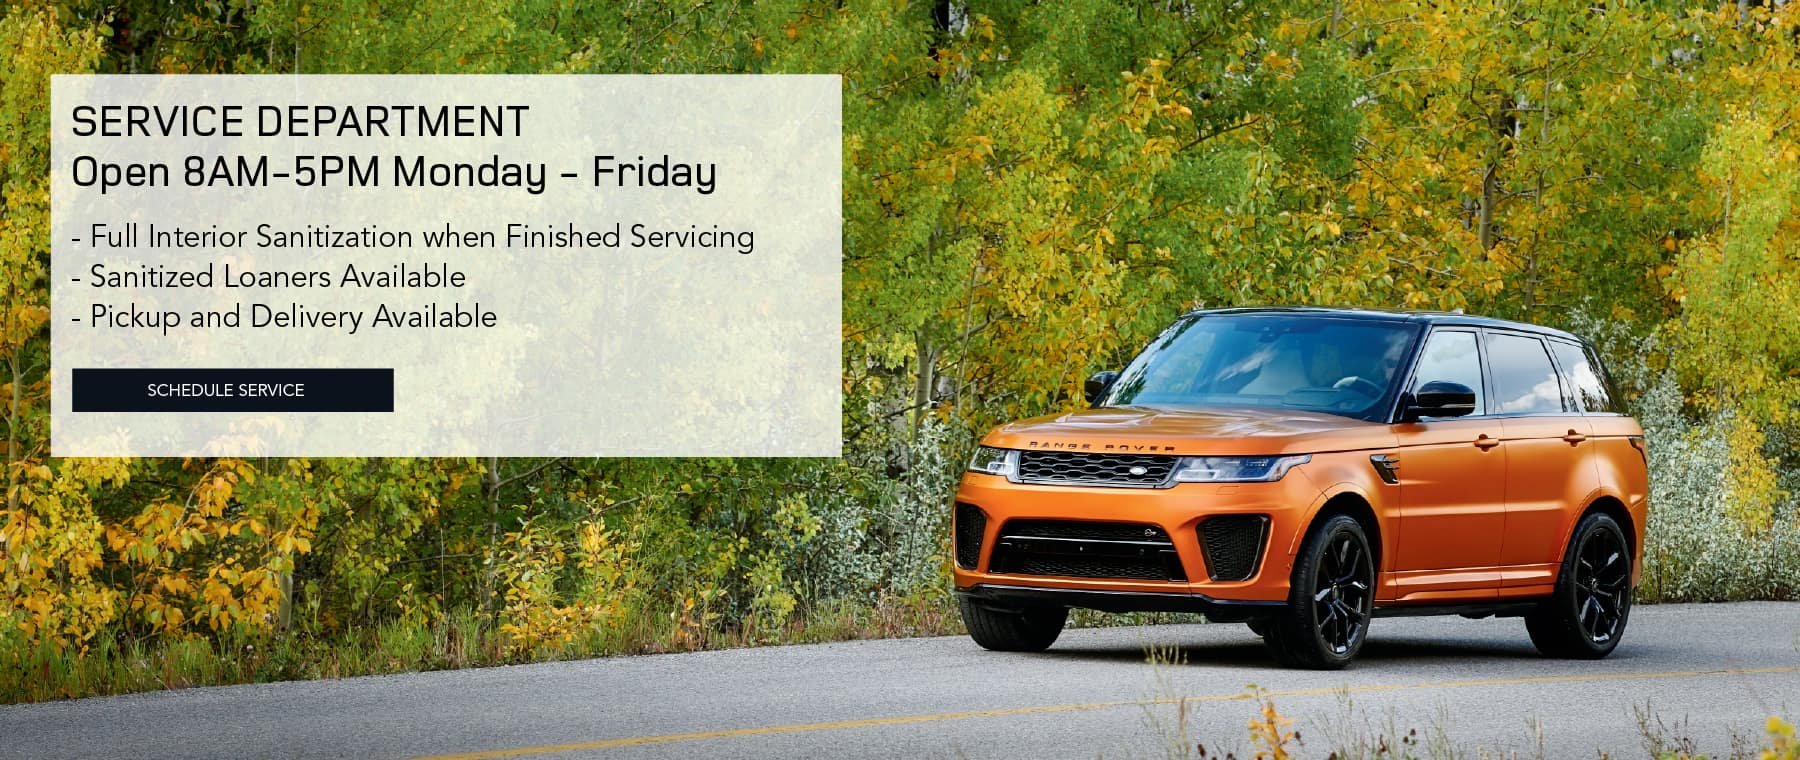 SERVICE DEPARTMENT. OPEN 8 AM TO 5 PM MONDAY TO FRIDAY. Full Interior Sanitization when Finished Servicing. Sanitized Loaners Available. Pickup and Delivery Available. SCHEDULE SERVICE. ORANGE RANGE ROVER SPORT DRIVING DOWN ROAD WITH CHANGING FALL LEAVES.